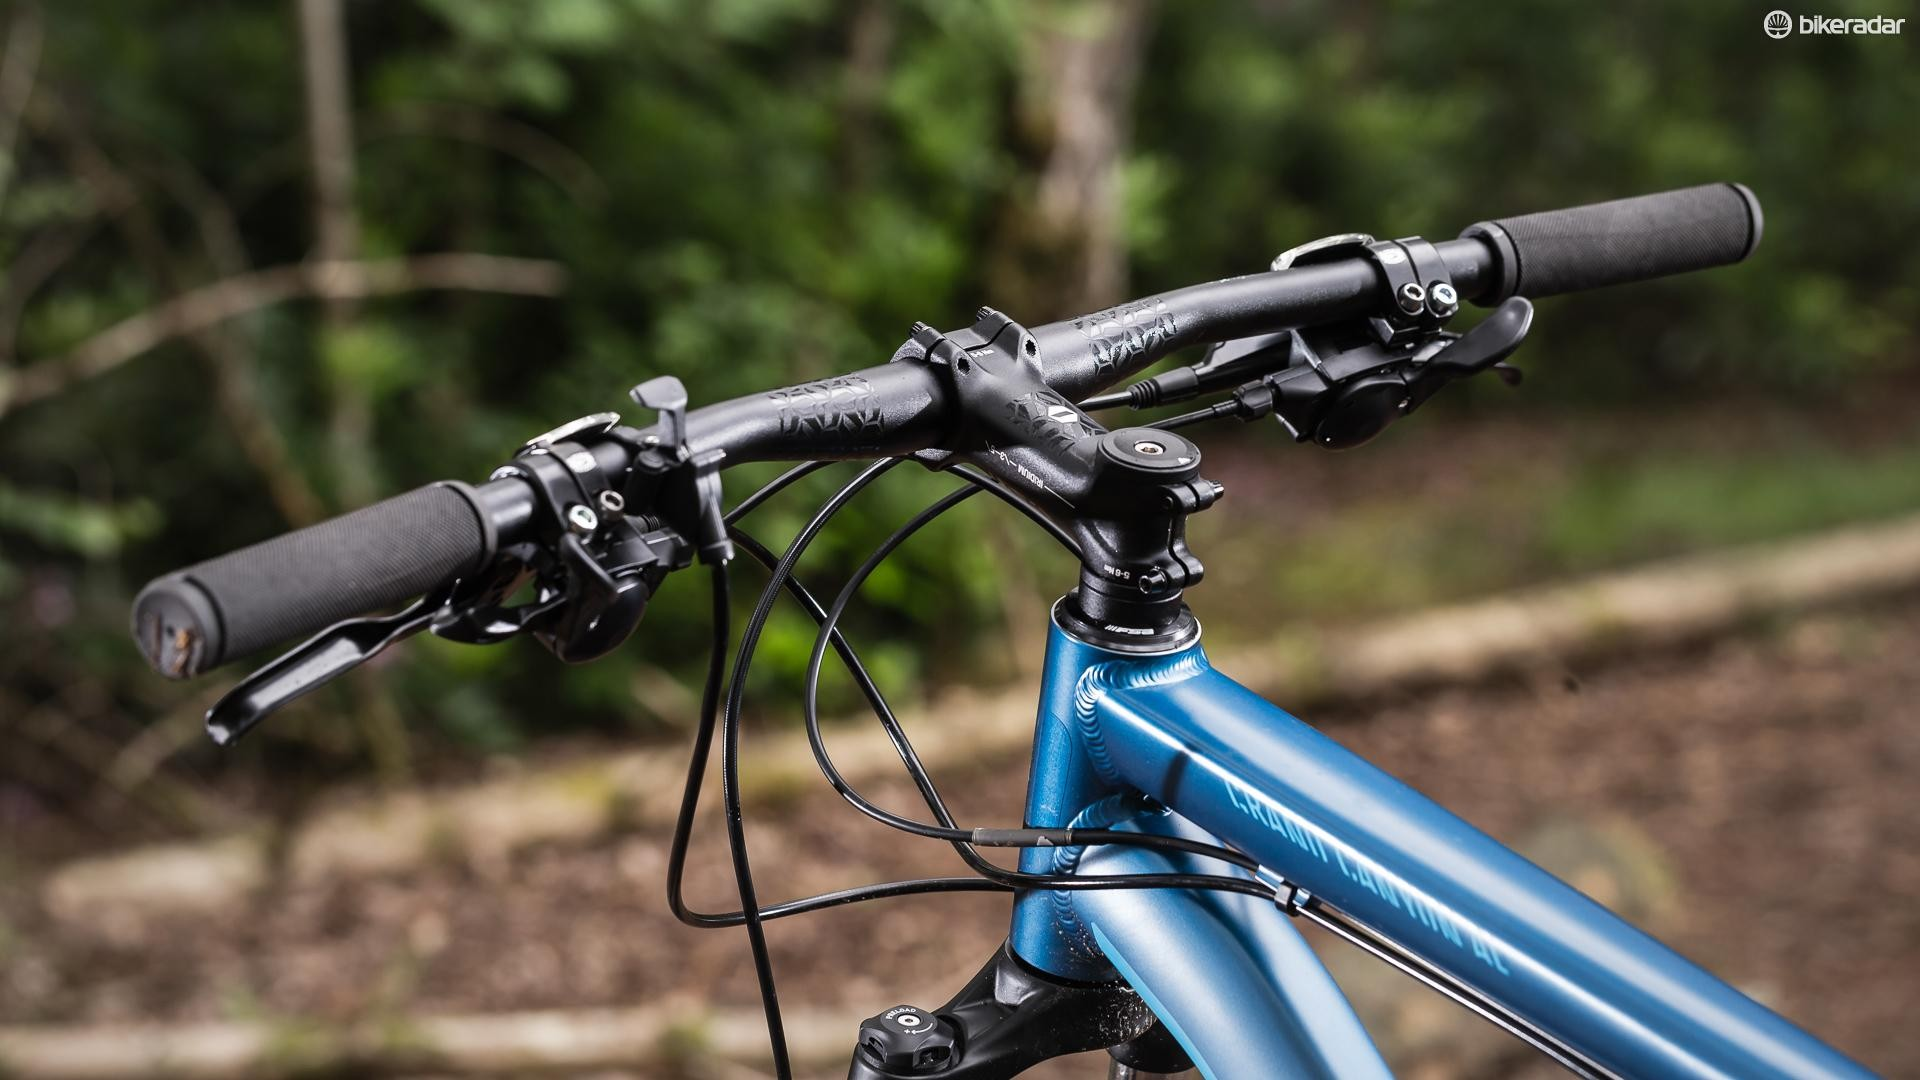 While the Crank Brothers bar is decently wide at 720mm, we thought the stem was a bit long